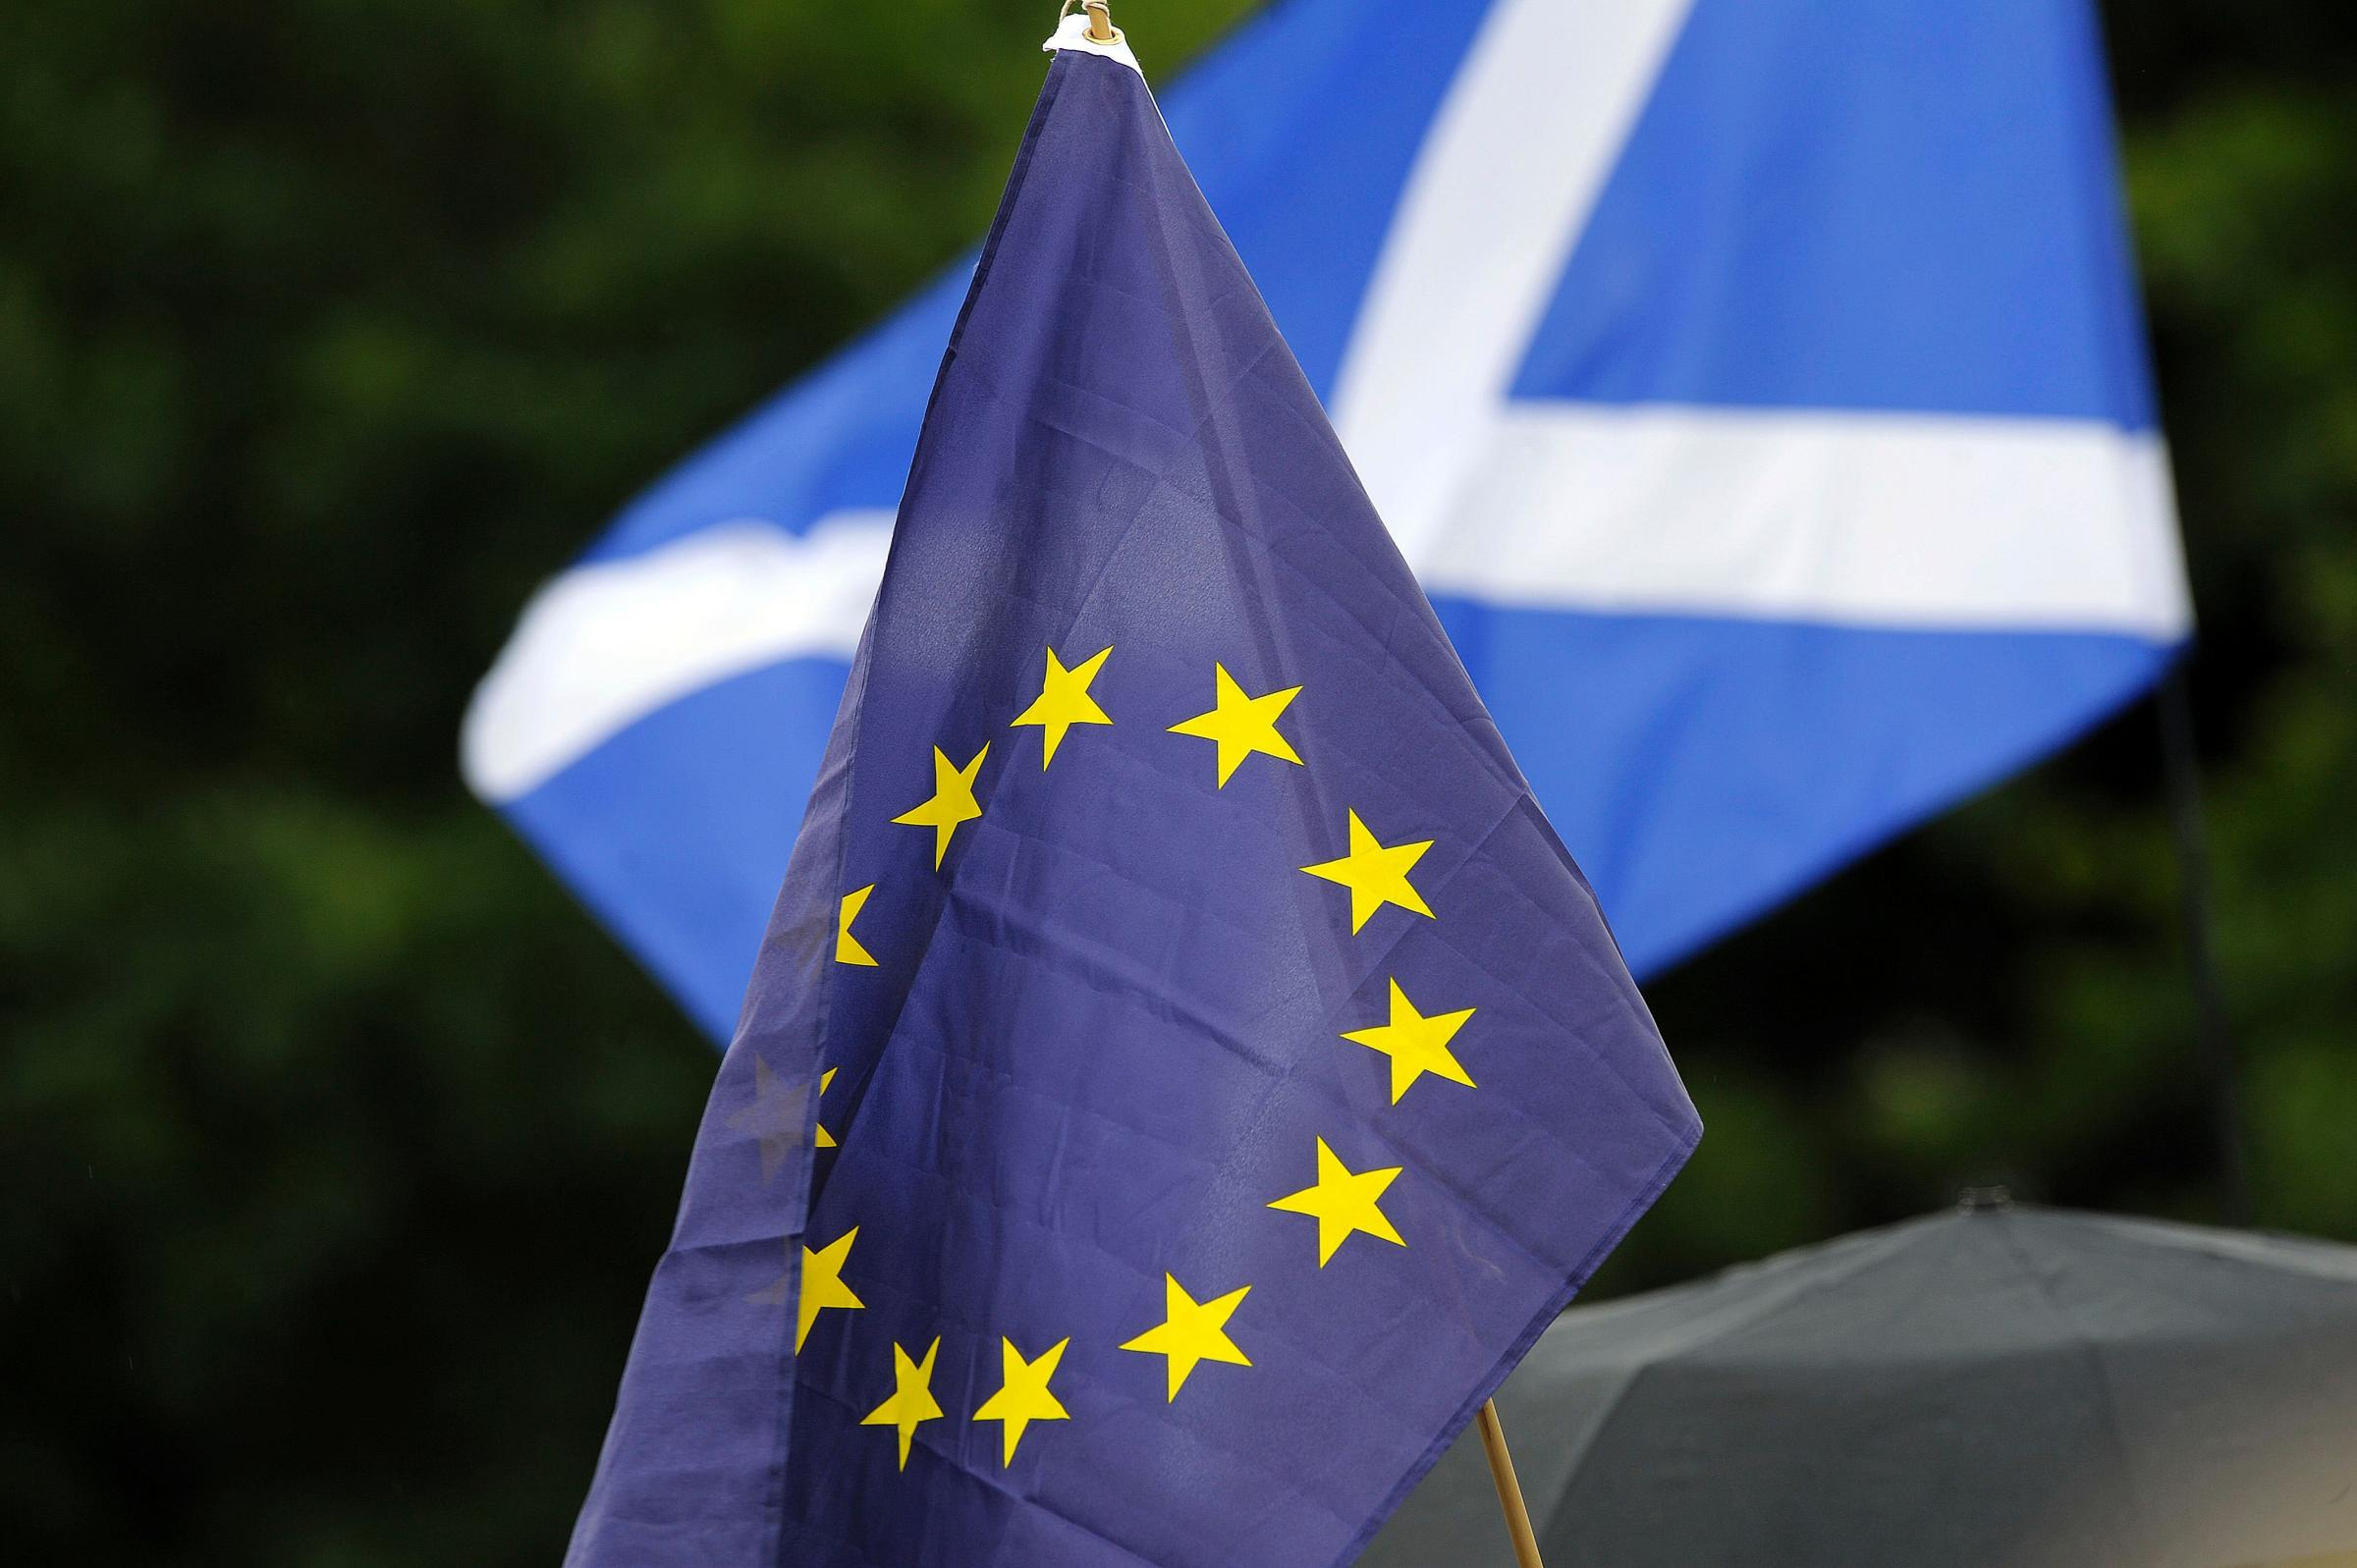 An independent Scotland outside the European Union would have to make new deals